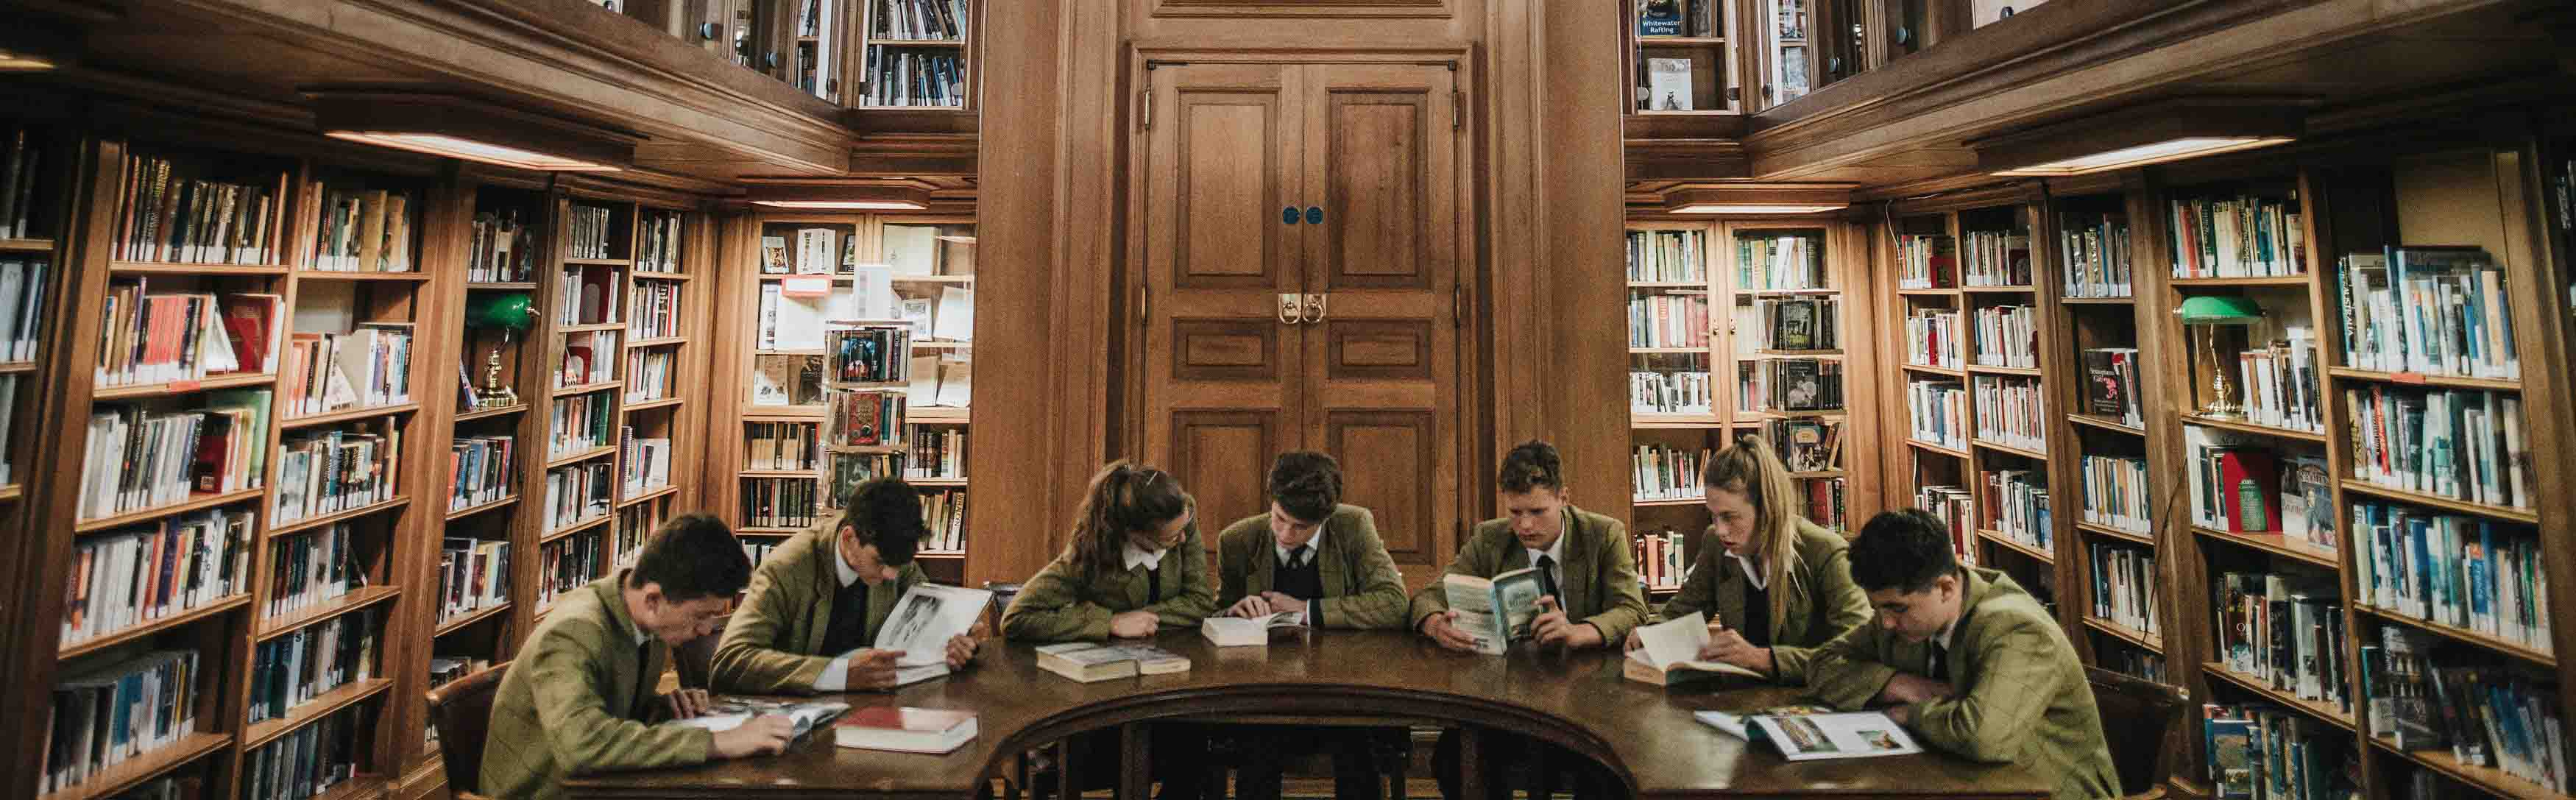 Sedbergh School | Dickinson britische Internatsberatung